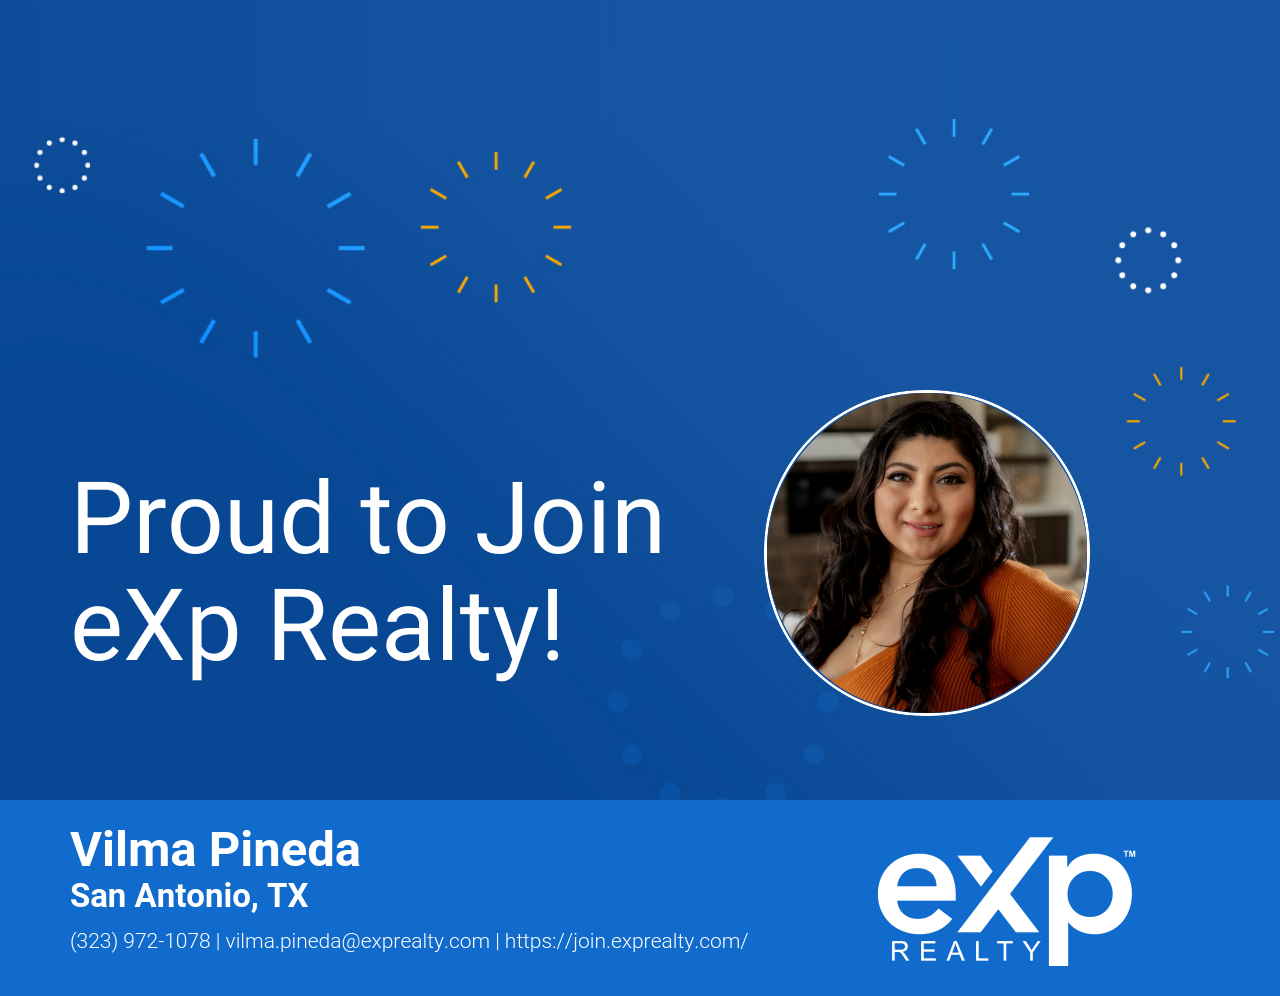 Vilma Pineda Joined eXp Realty!